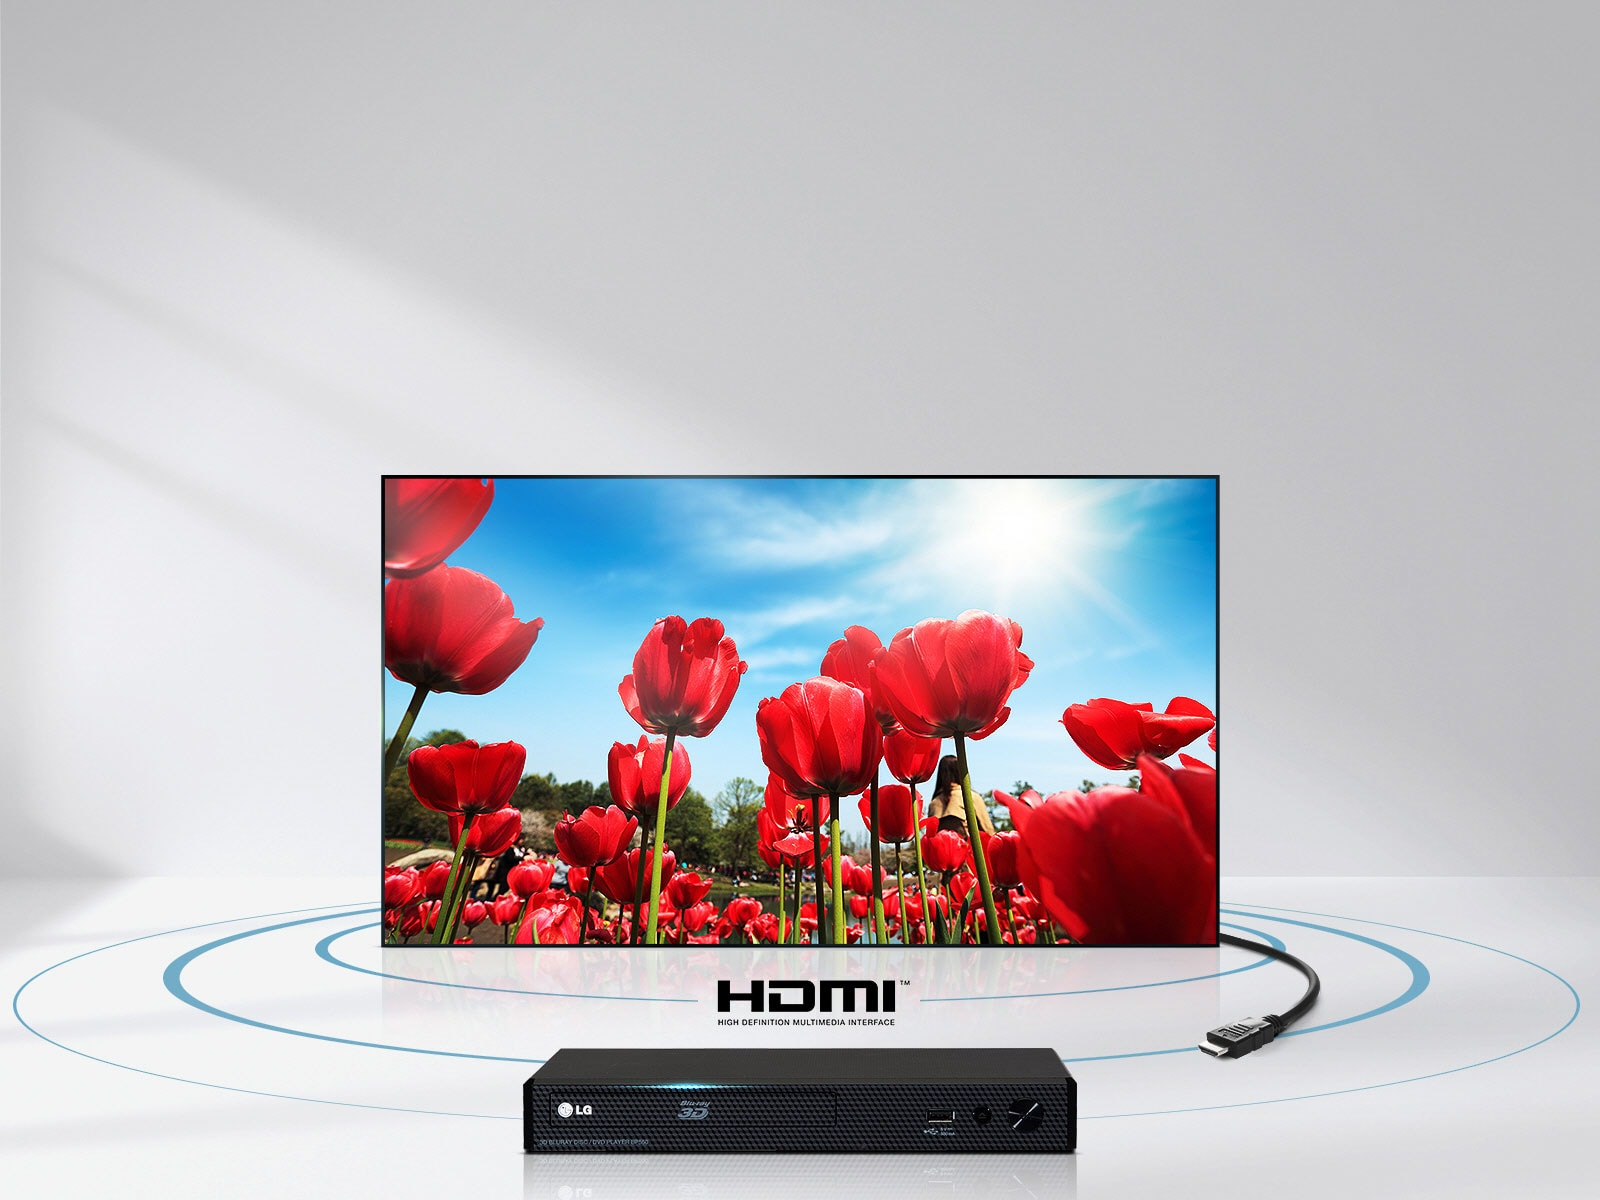 Máxima calidad y video con solo un cable HDMI